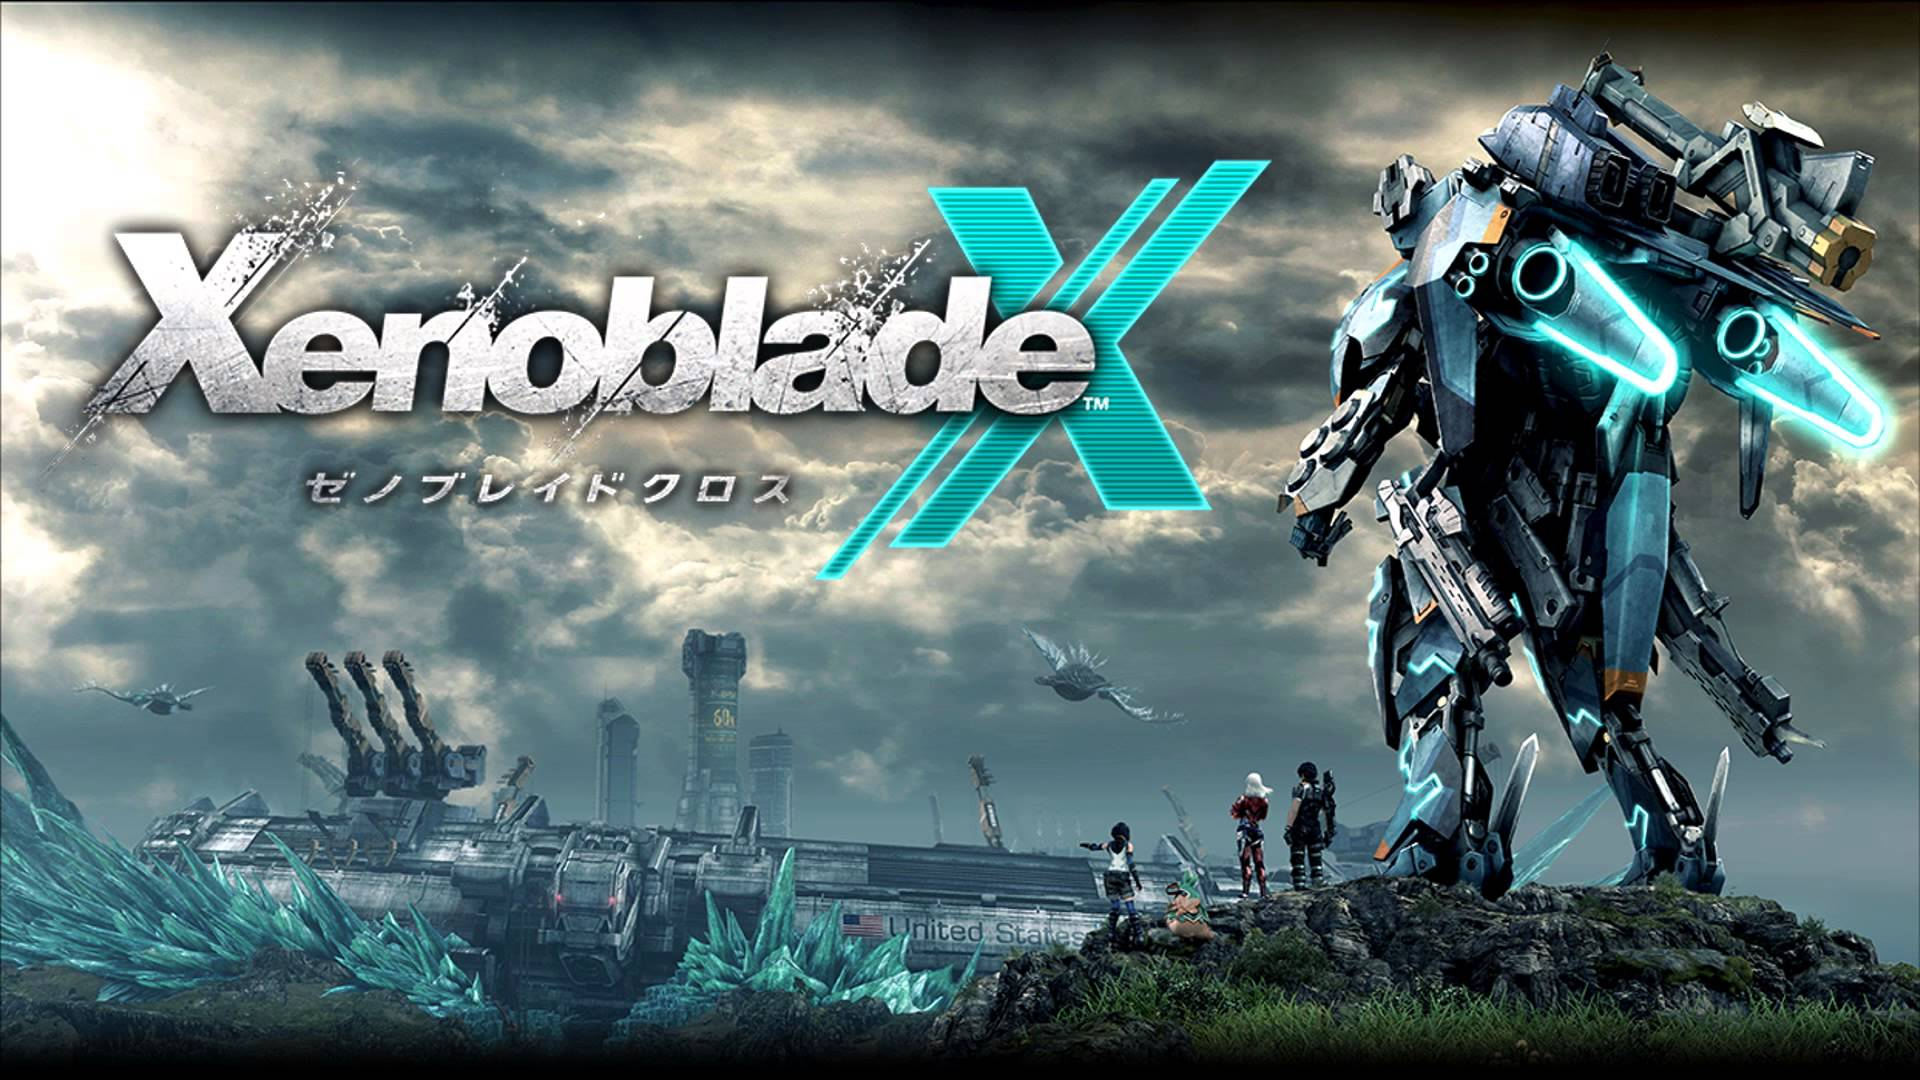 Xenoblade Chronicles X Hd Wallpaper Background Image 1920x1080